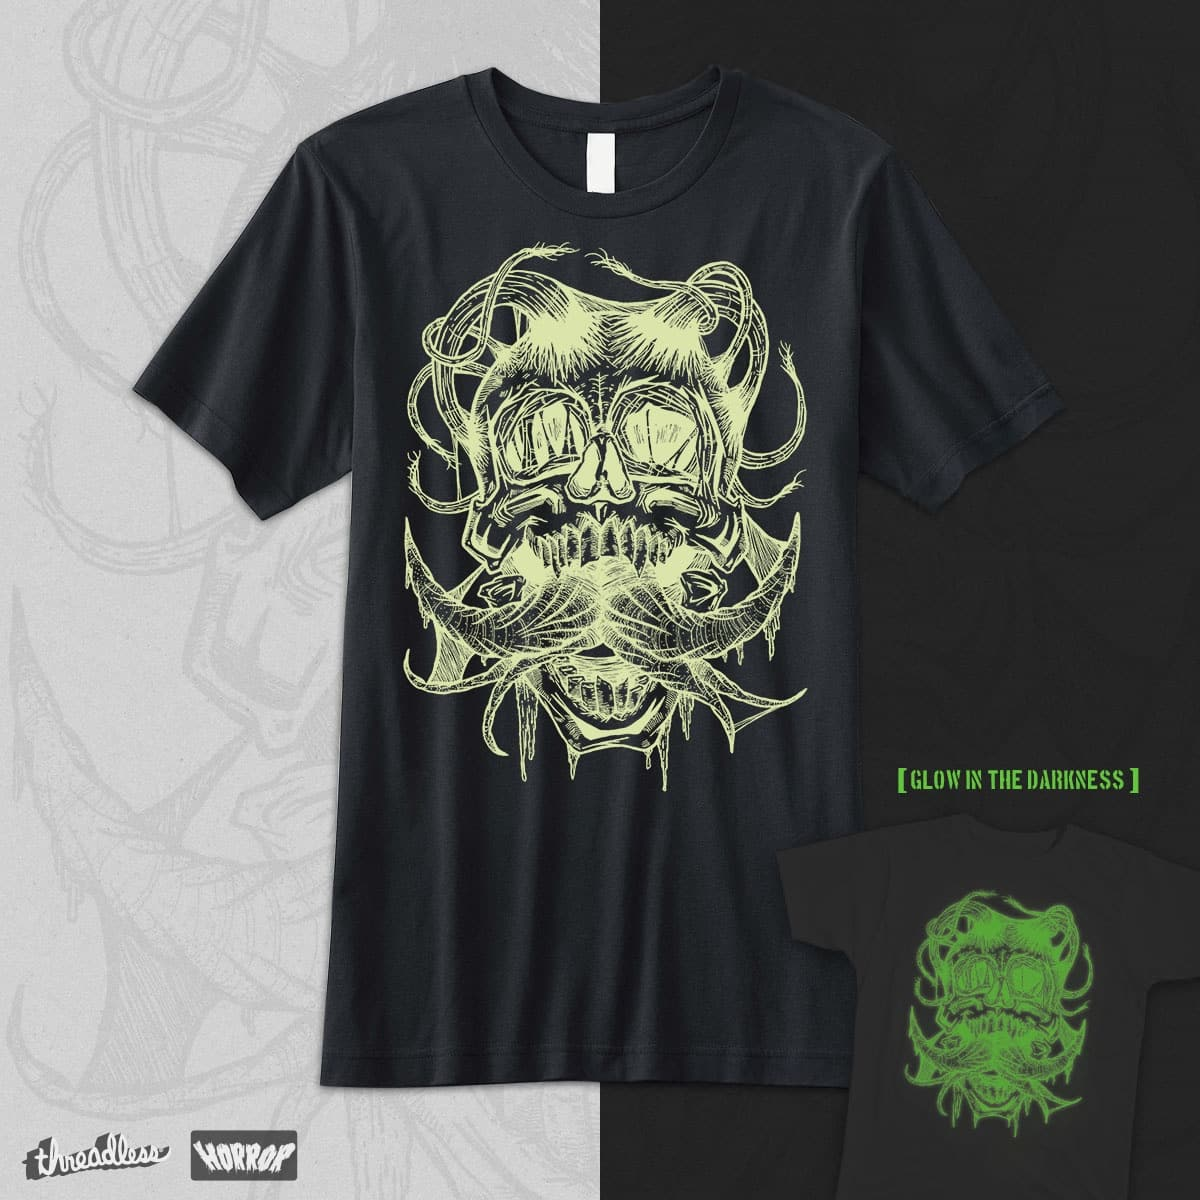 Glow in the darkness by pethco on Threadless